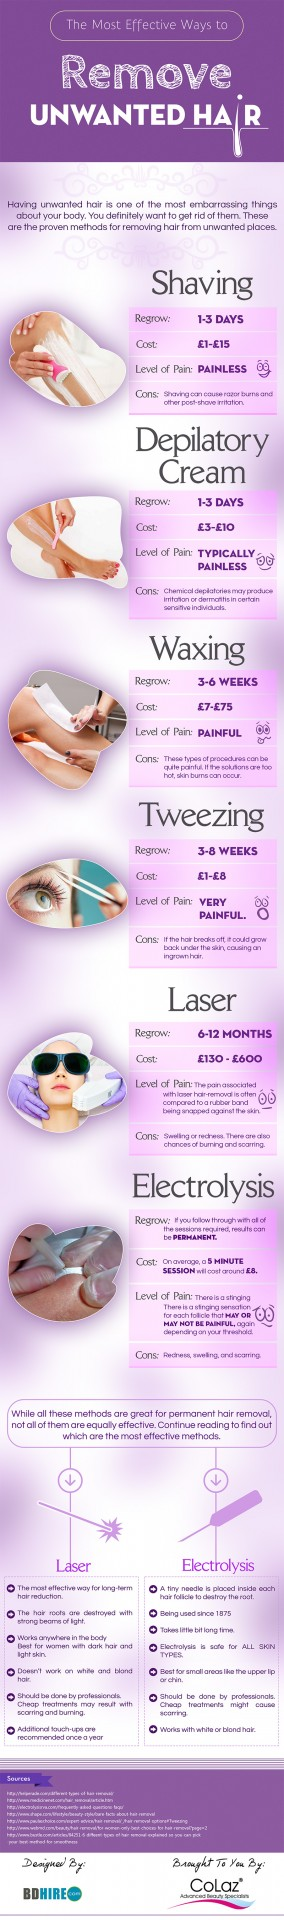 infographic showing many ways to remove unwanted hair